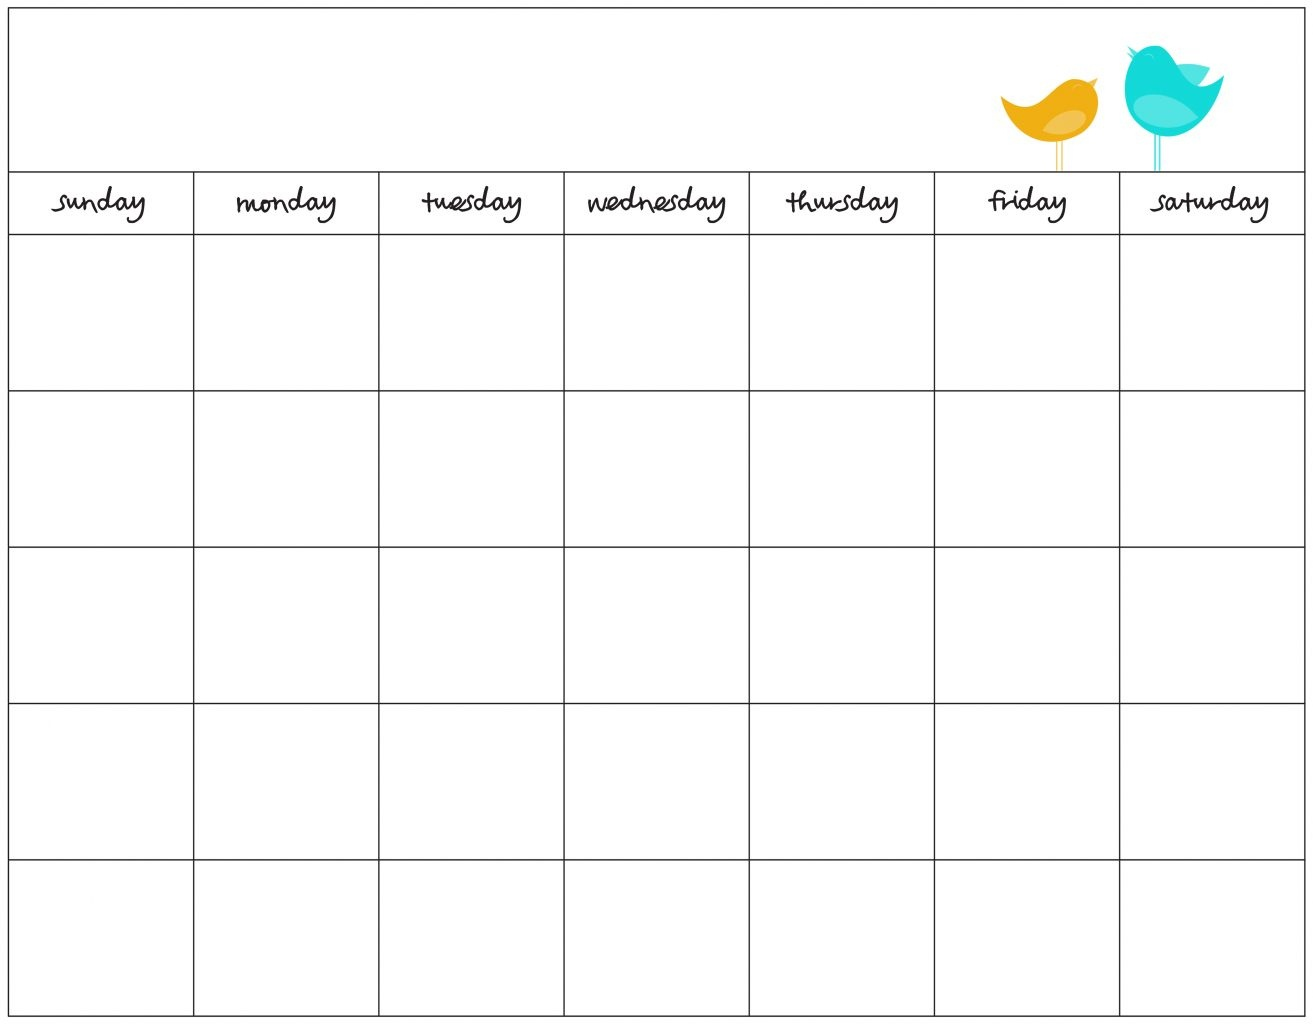 Free Weekly Schedule Maker Blank Work Schedules Template - Free Printable Work Schedule Maker